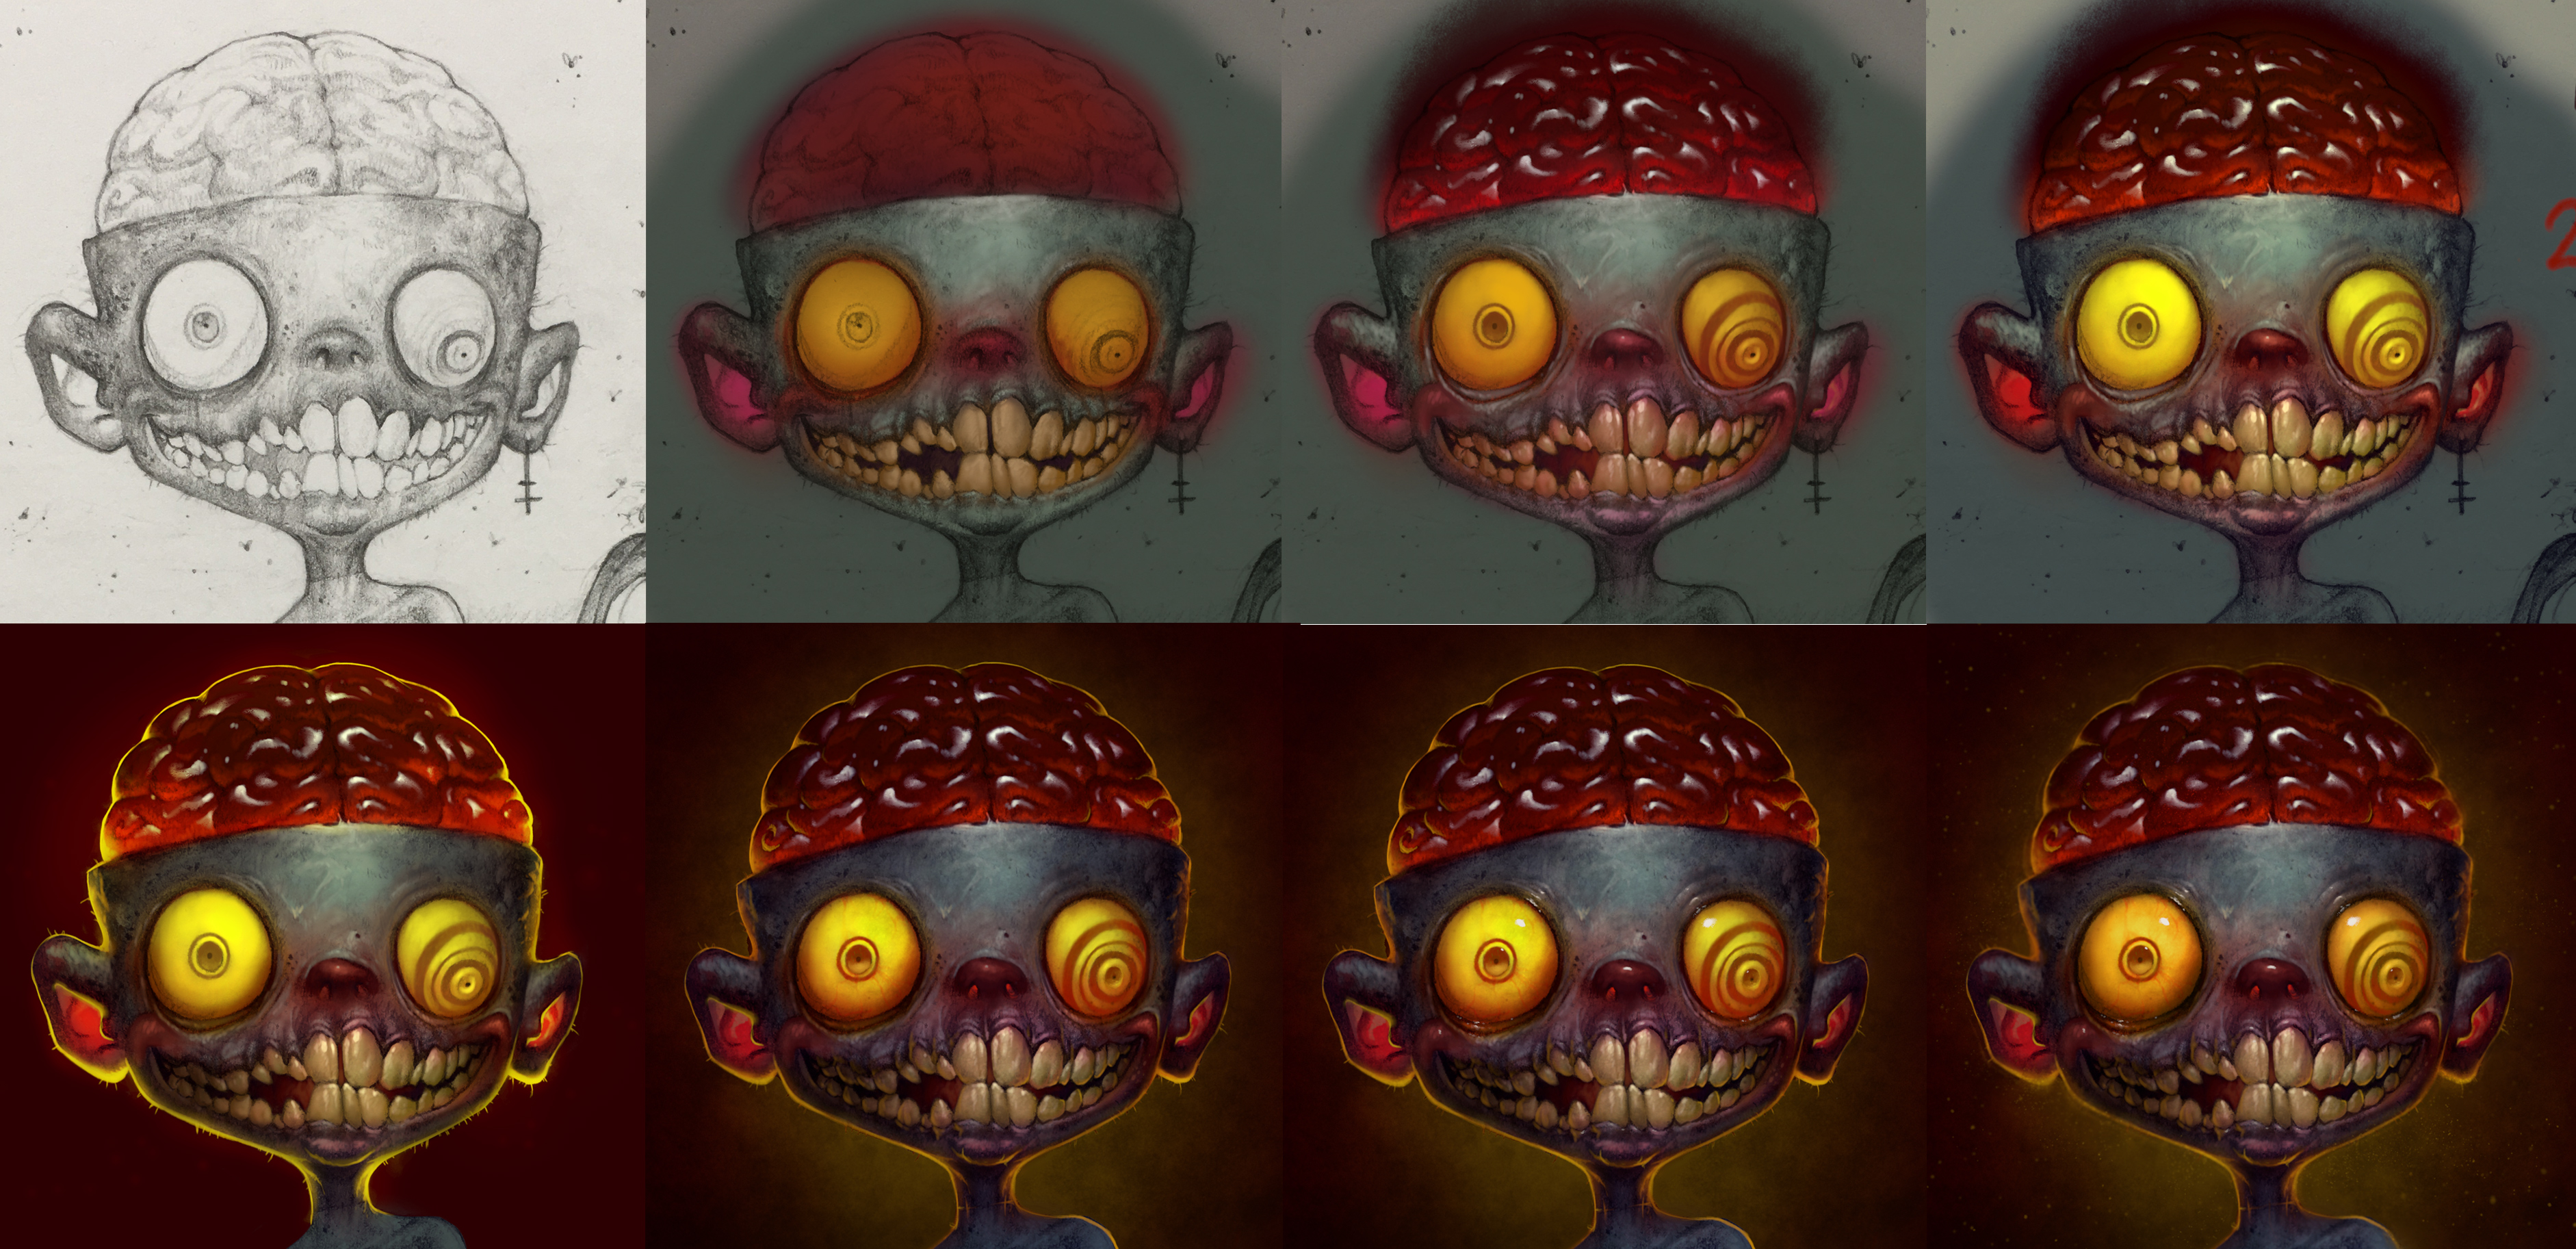 Photoshop File: Zombie Boy - CG Cookie